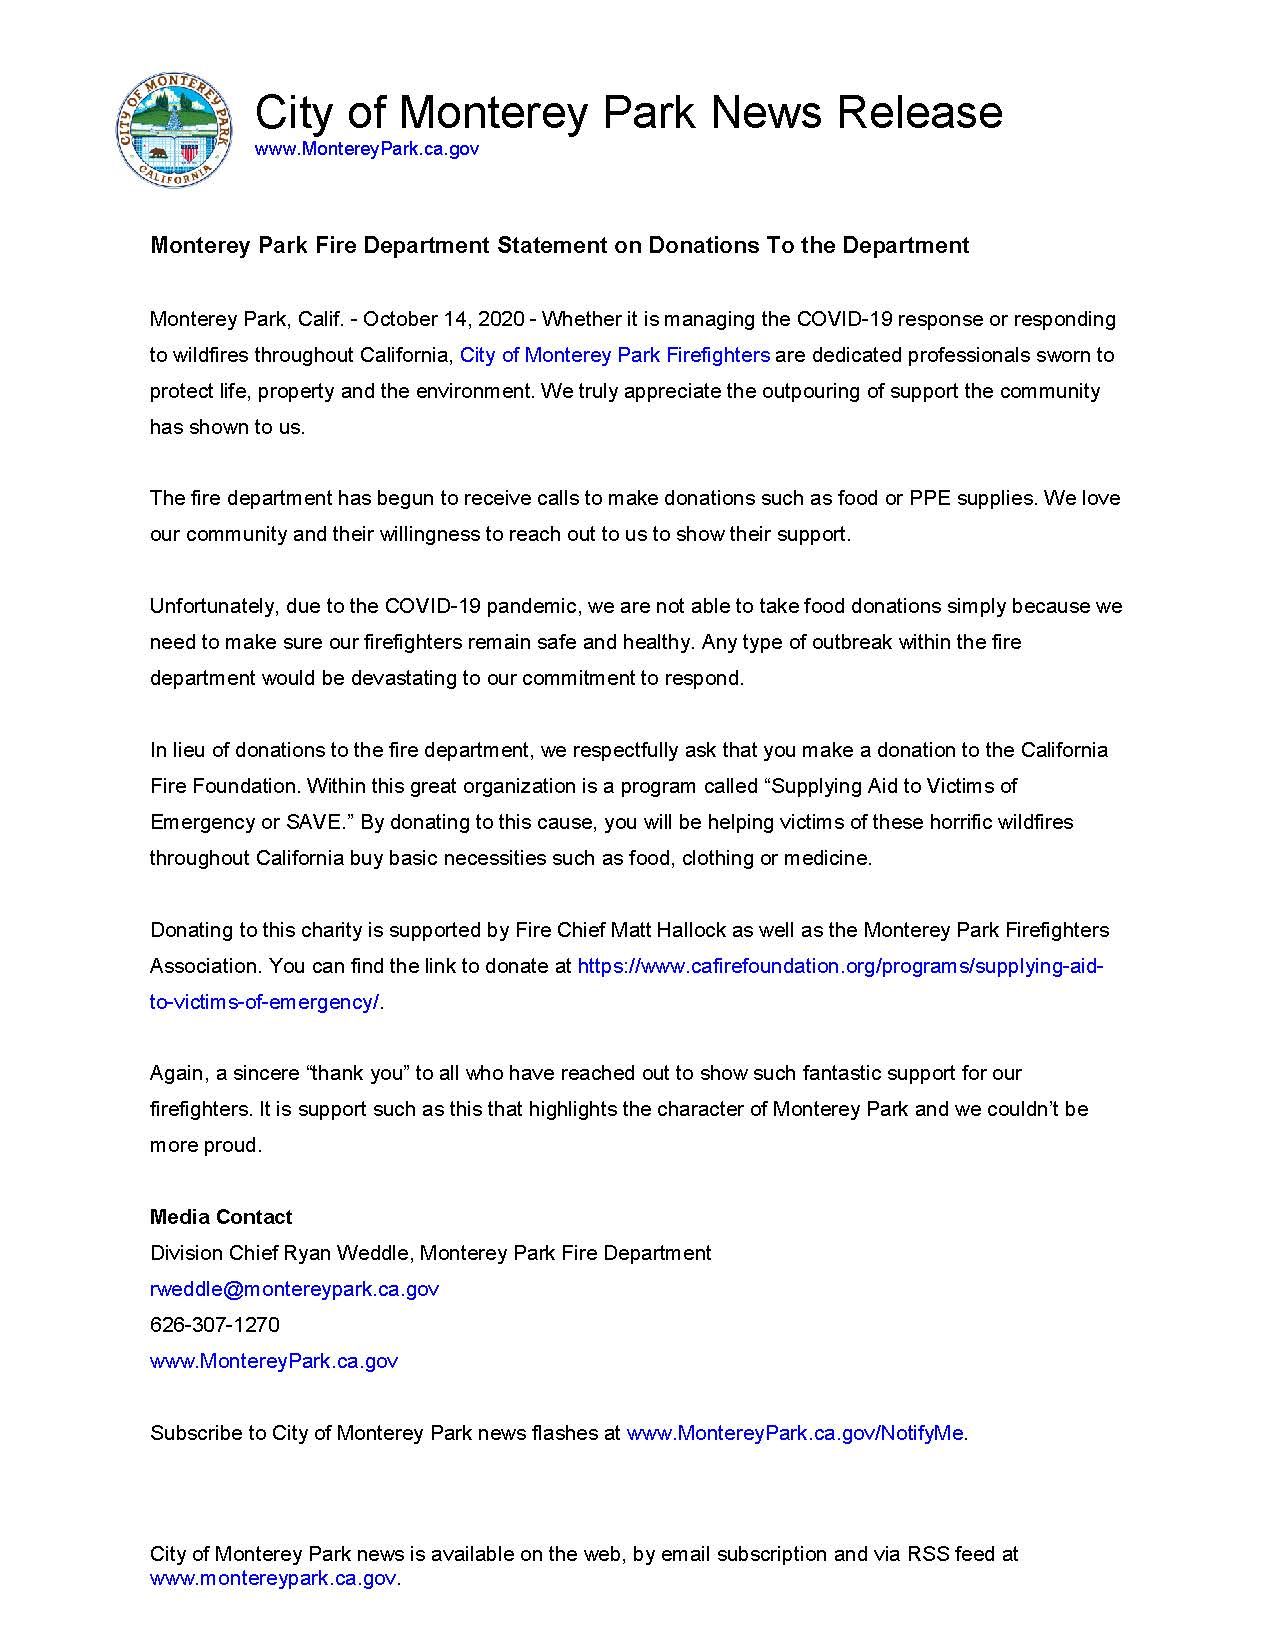 MPK News Release-Monterey Park Fire Department Statement on Donations To the Department